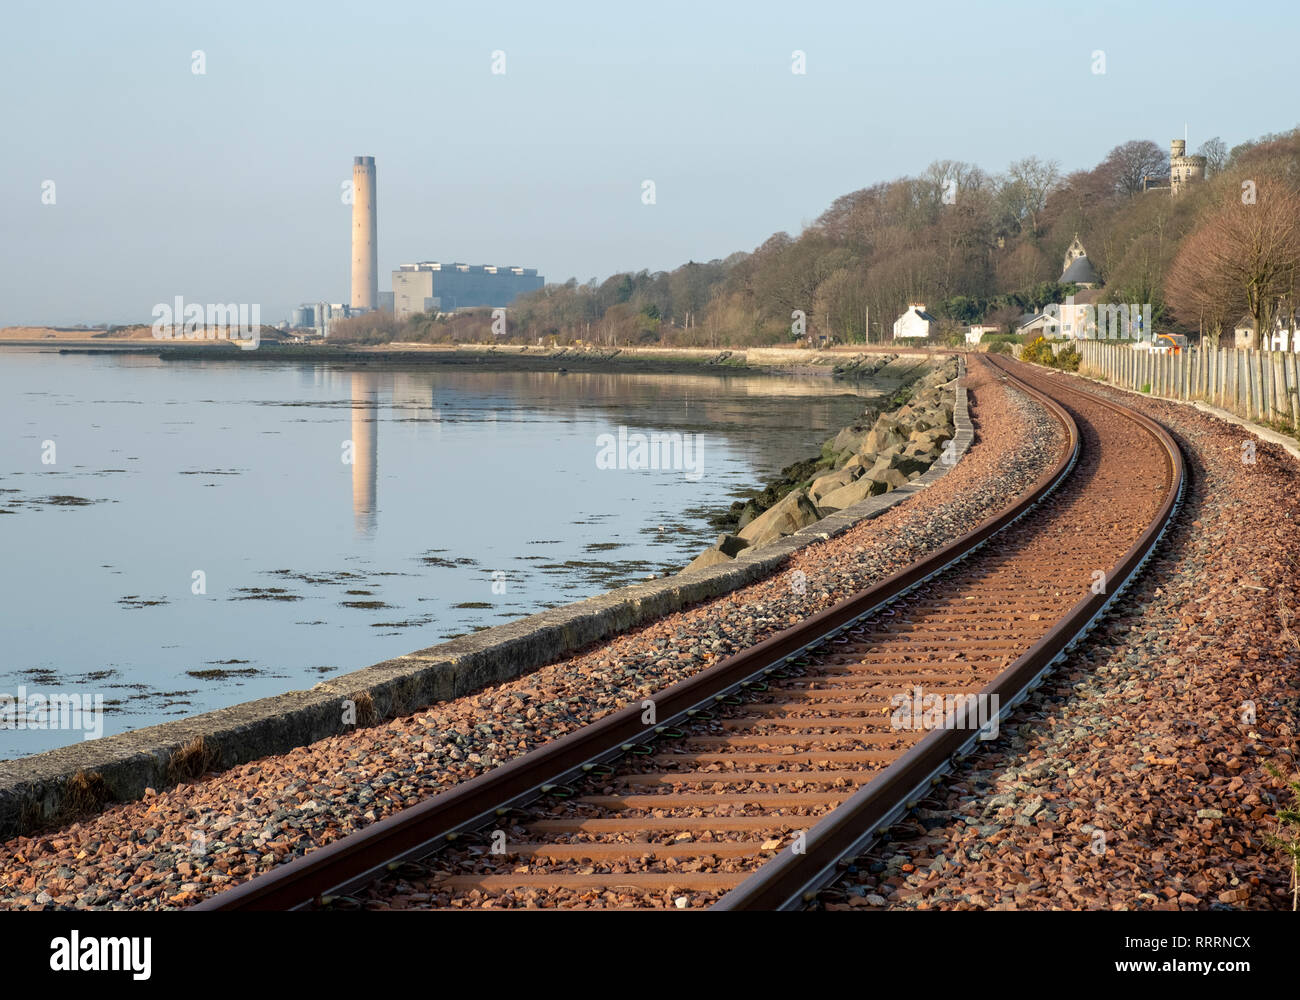 The Kincardine railway line at Culross, Fife with the former Longannet power station in the distance. - Stock Image